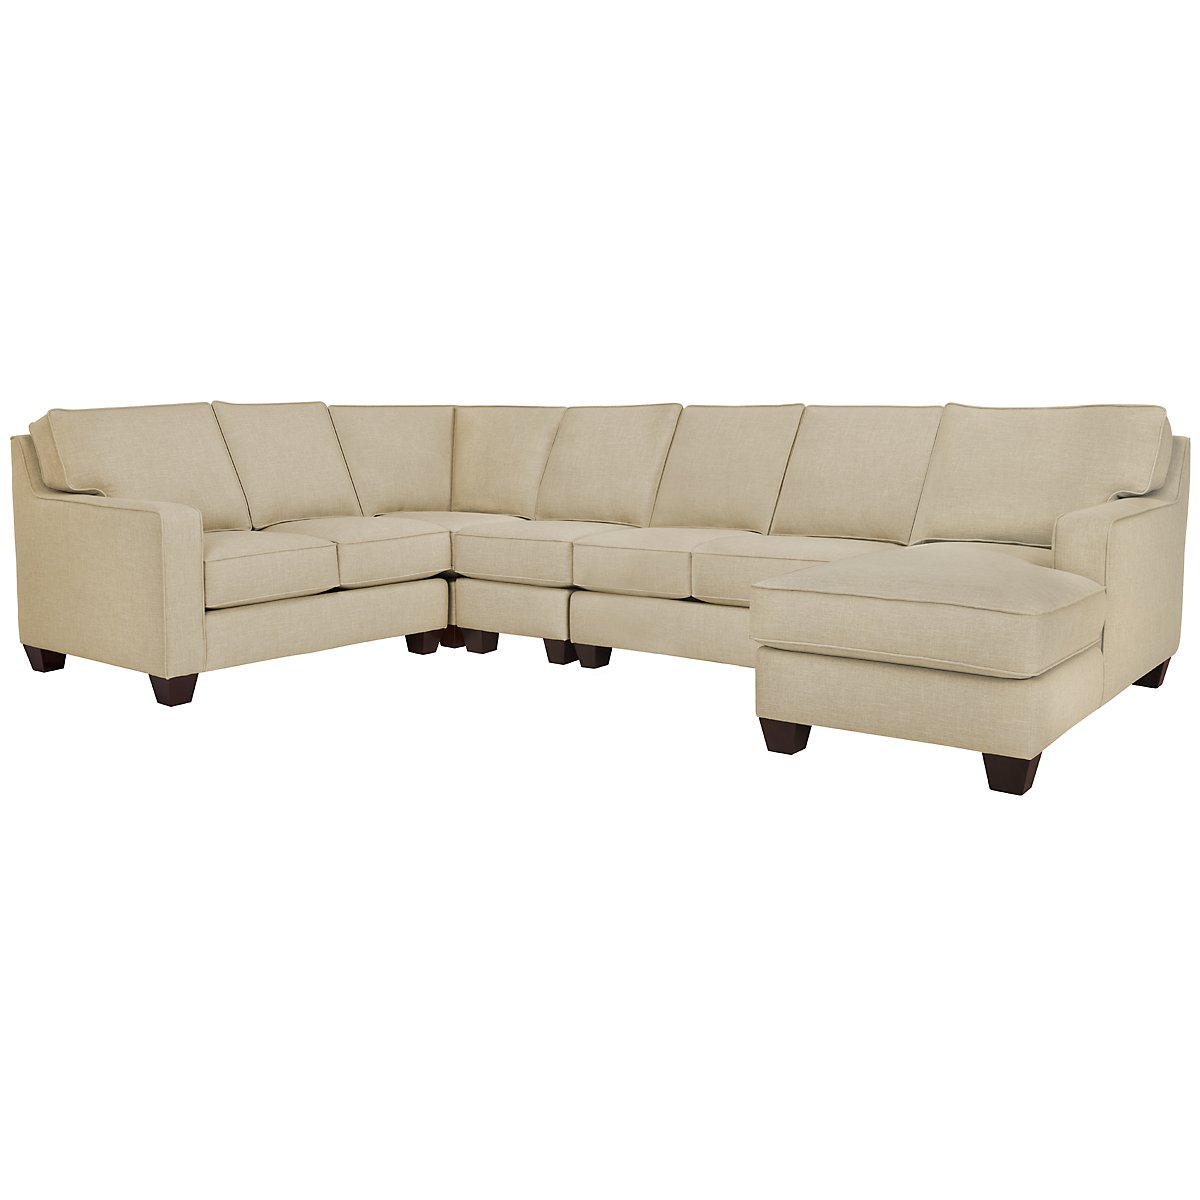 City furniture york beige fabric large right chaise sectional for Beige sectional with chaise